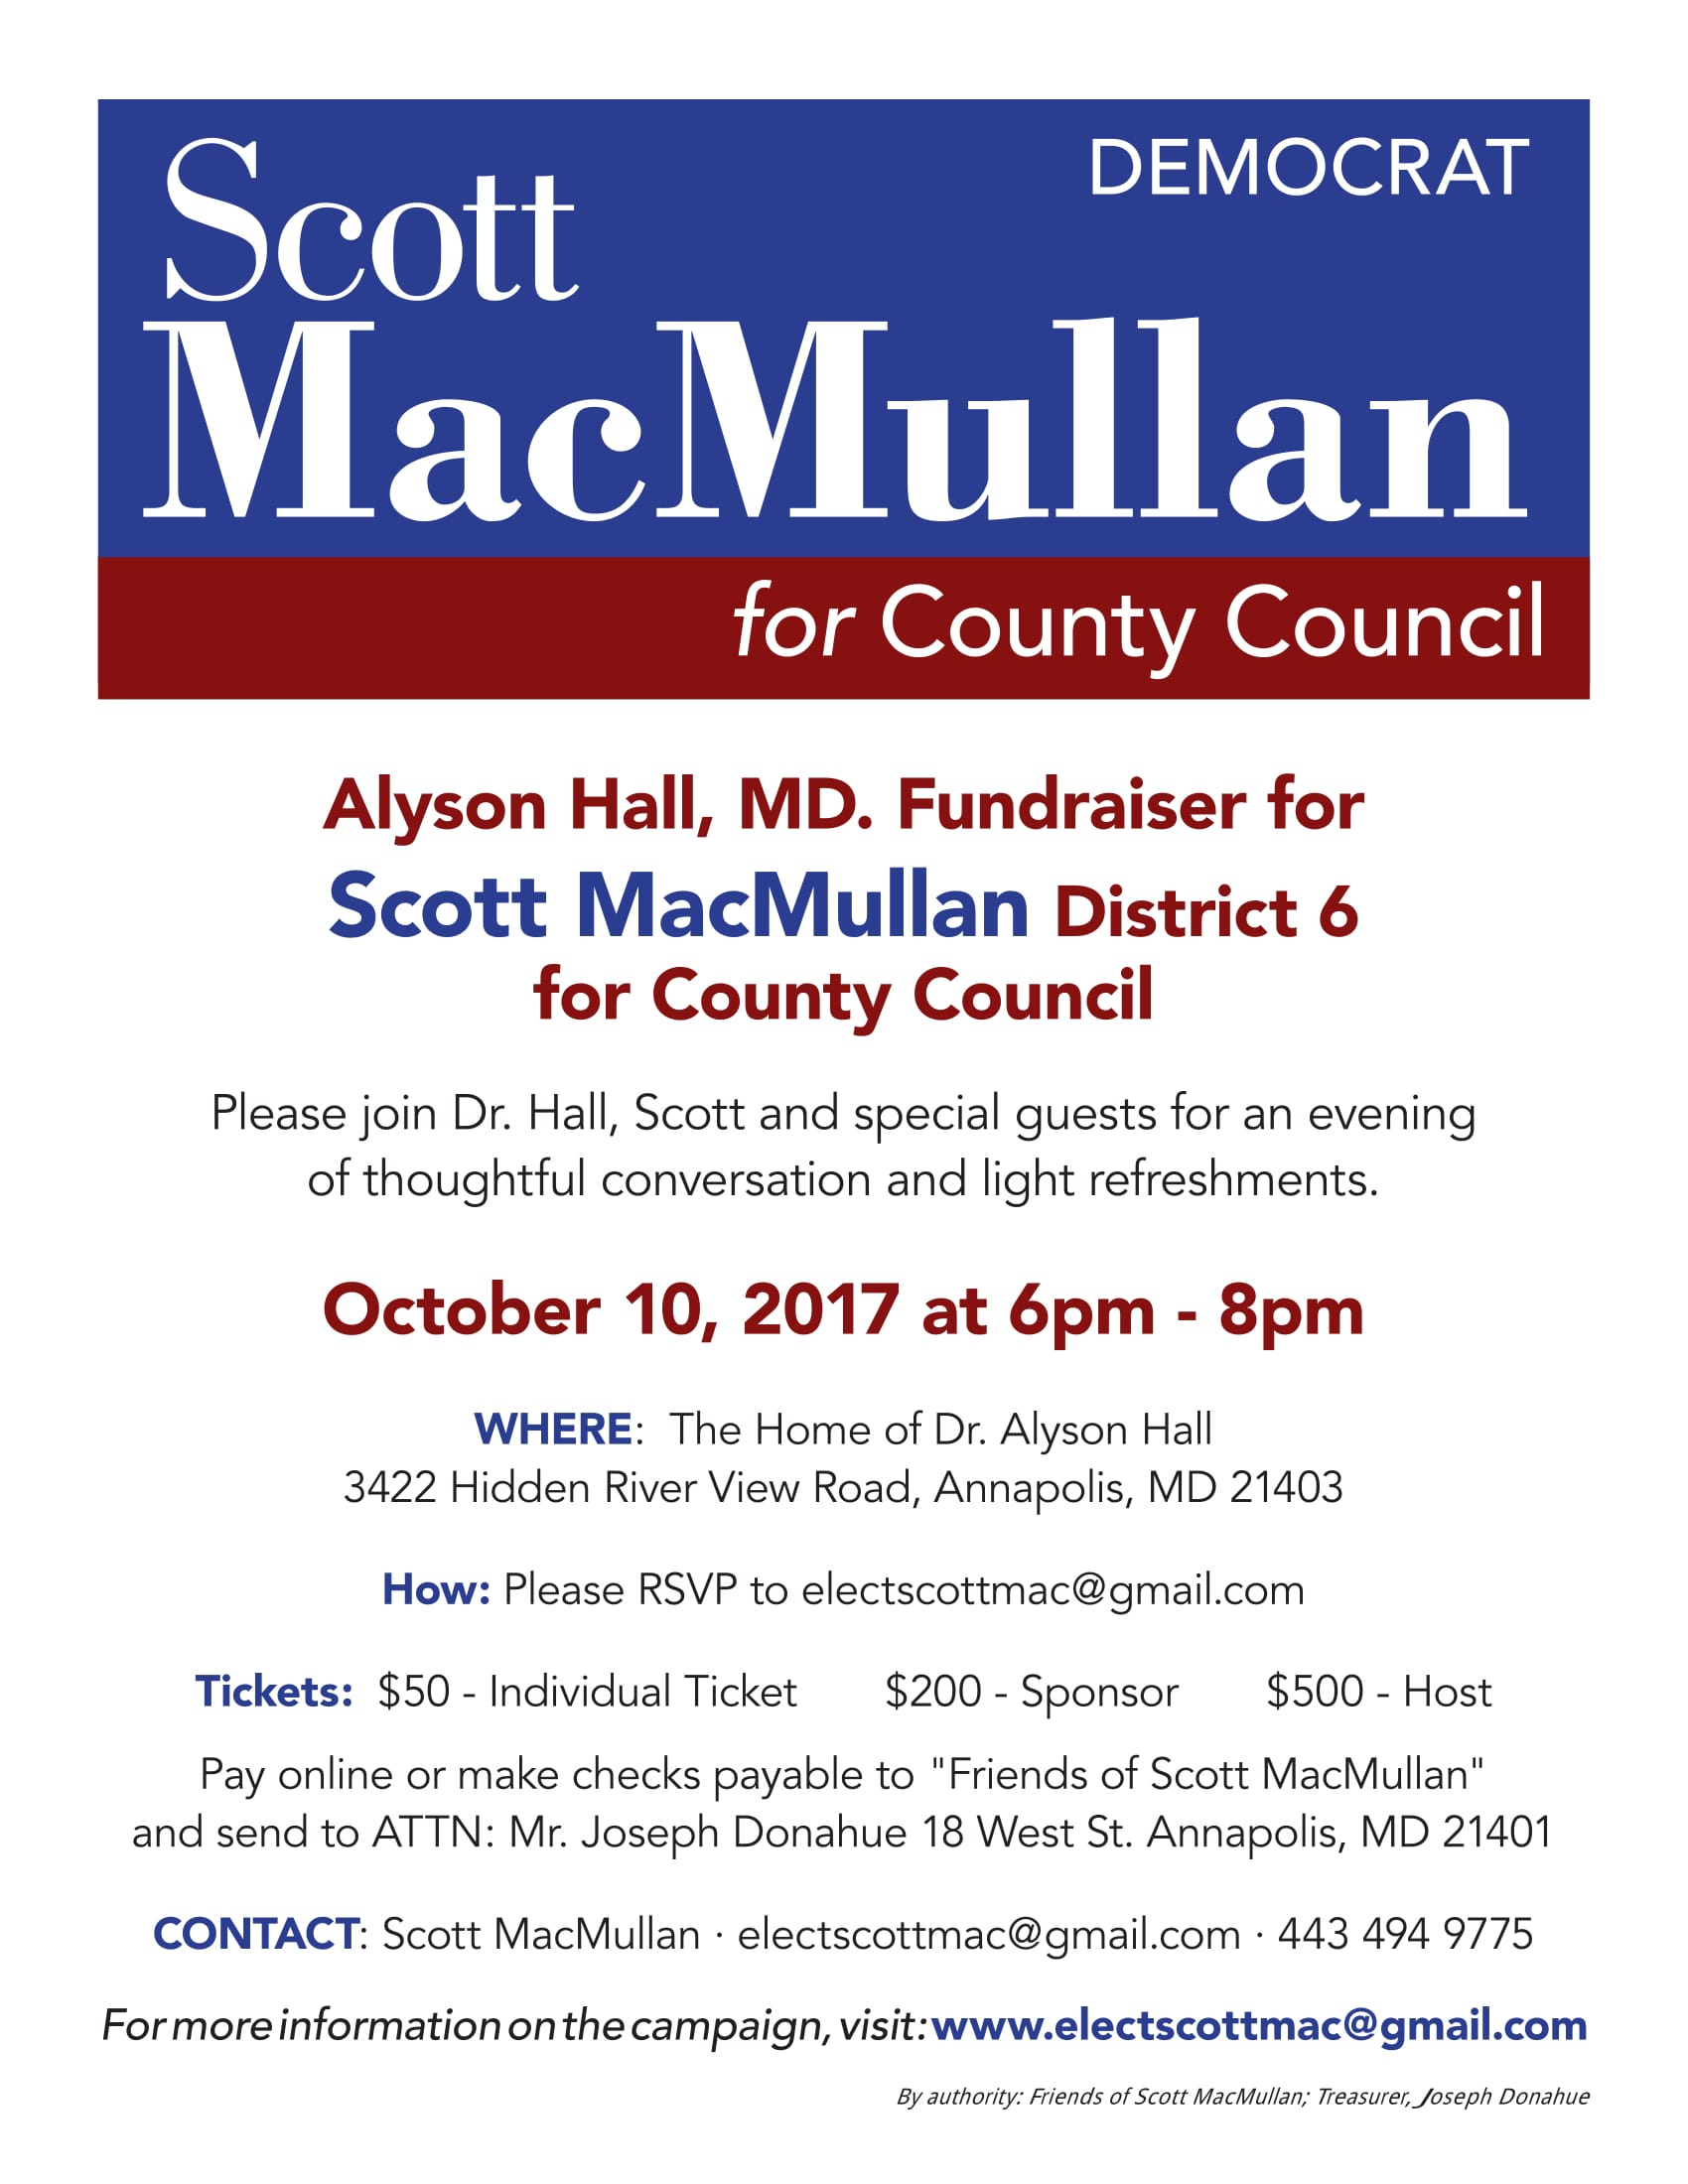 MacMullan_Fundraiser_Flyer_OCT17__3rd_draft-1.jpg